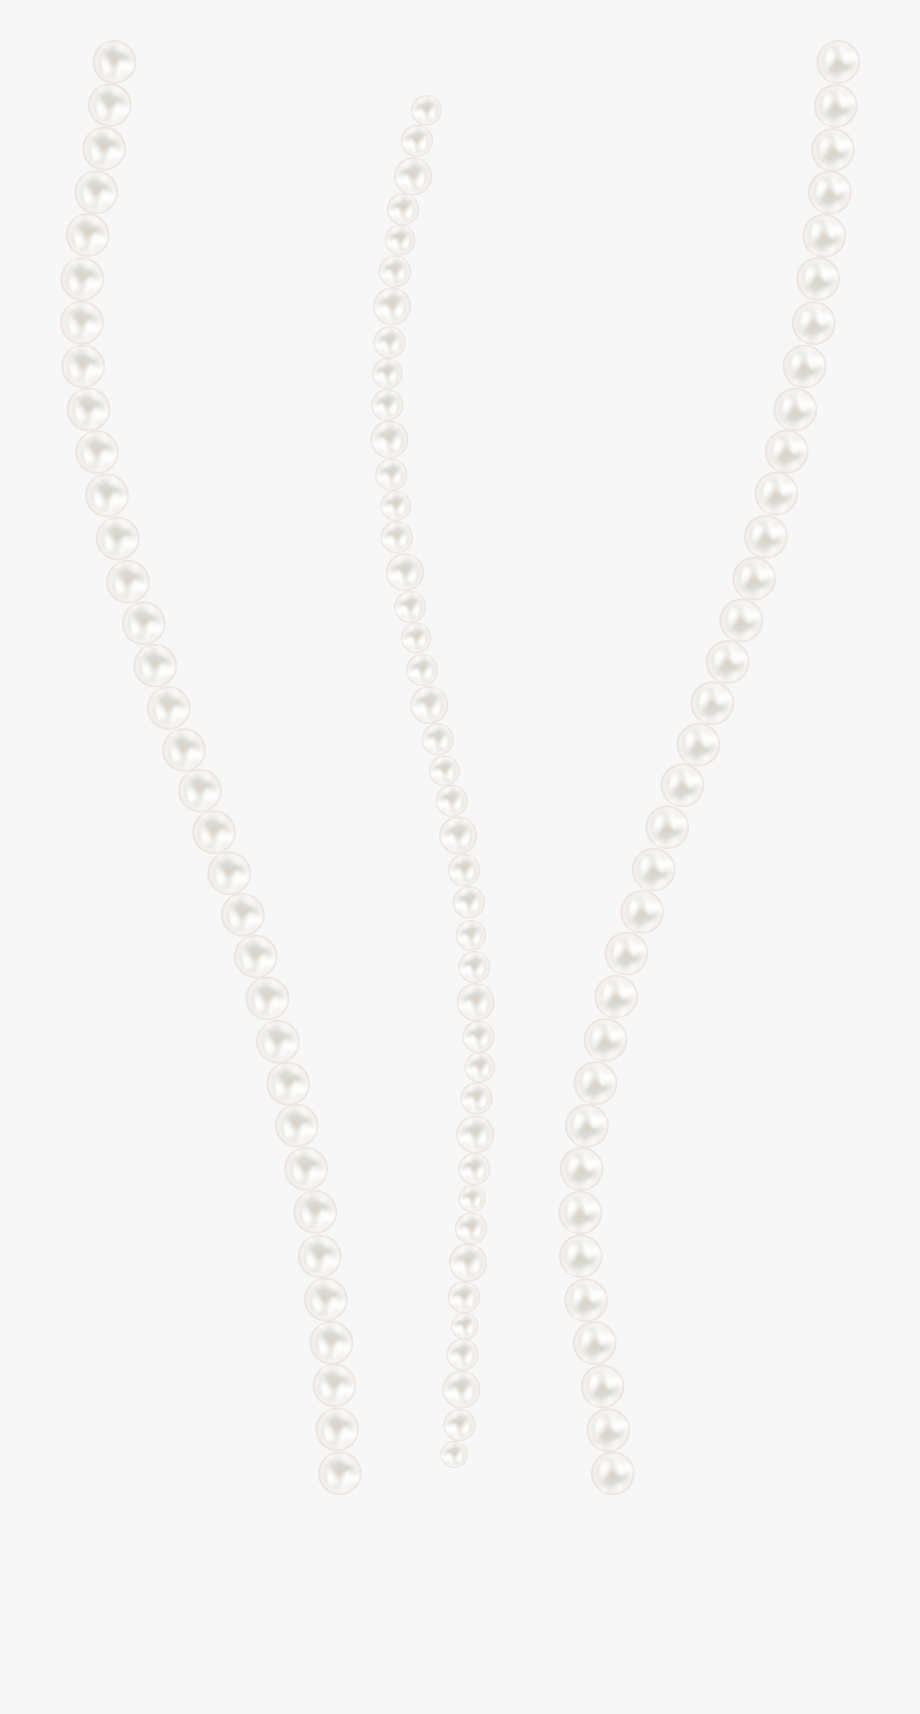 Necklace clipart png format. Invisible setting diamond